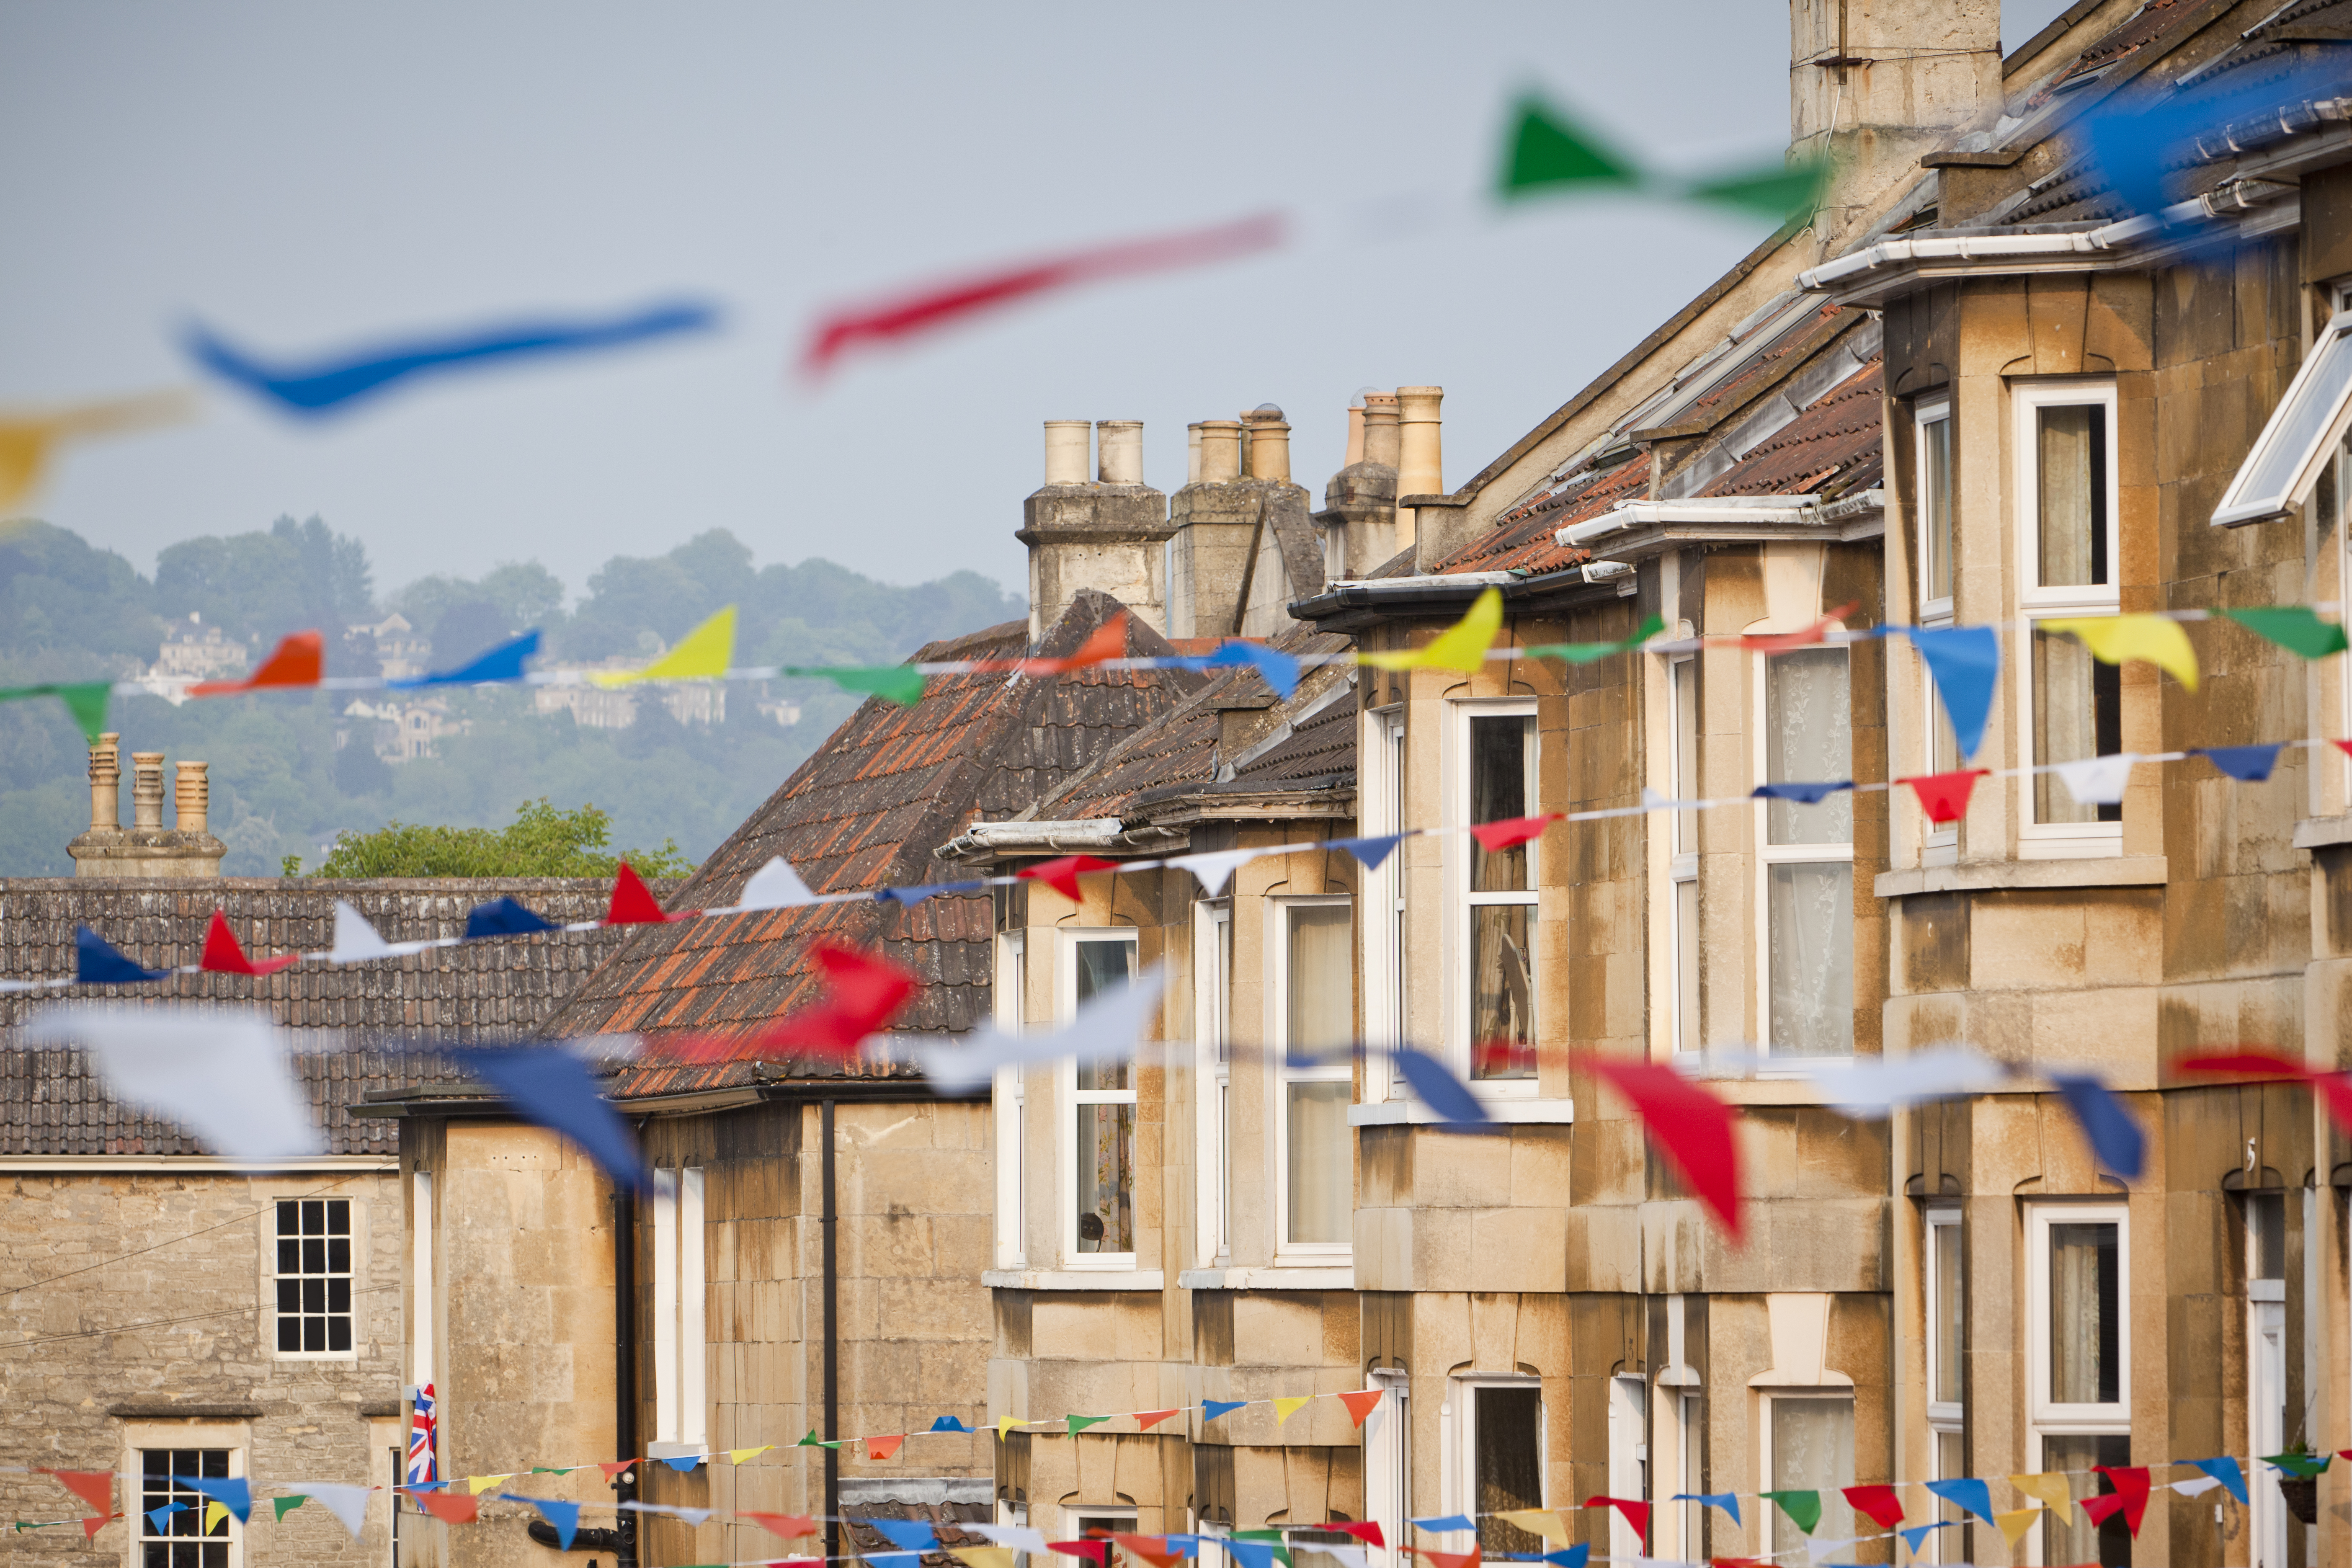 A row of houses with colourful bunting draped between each house.